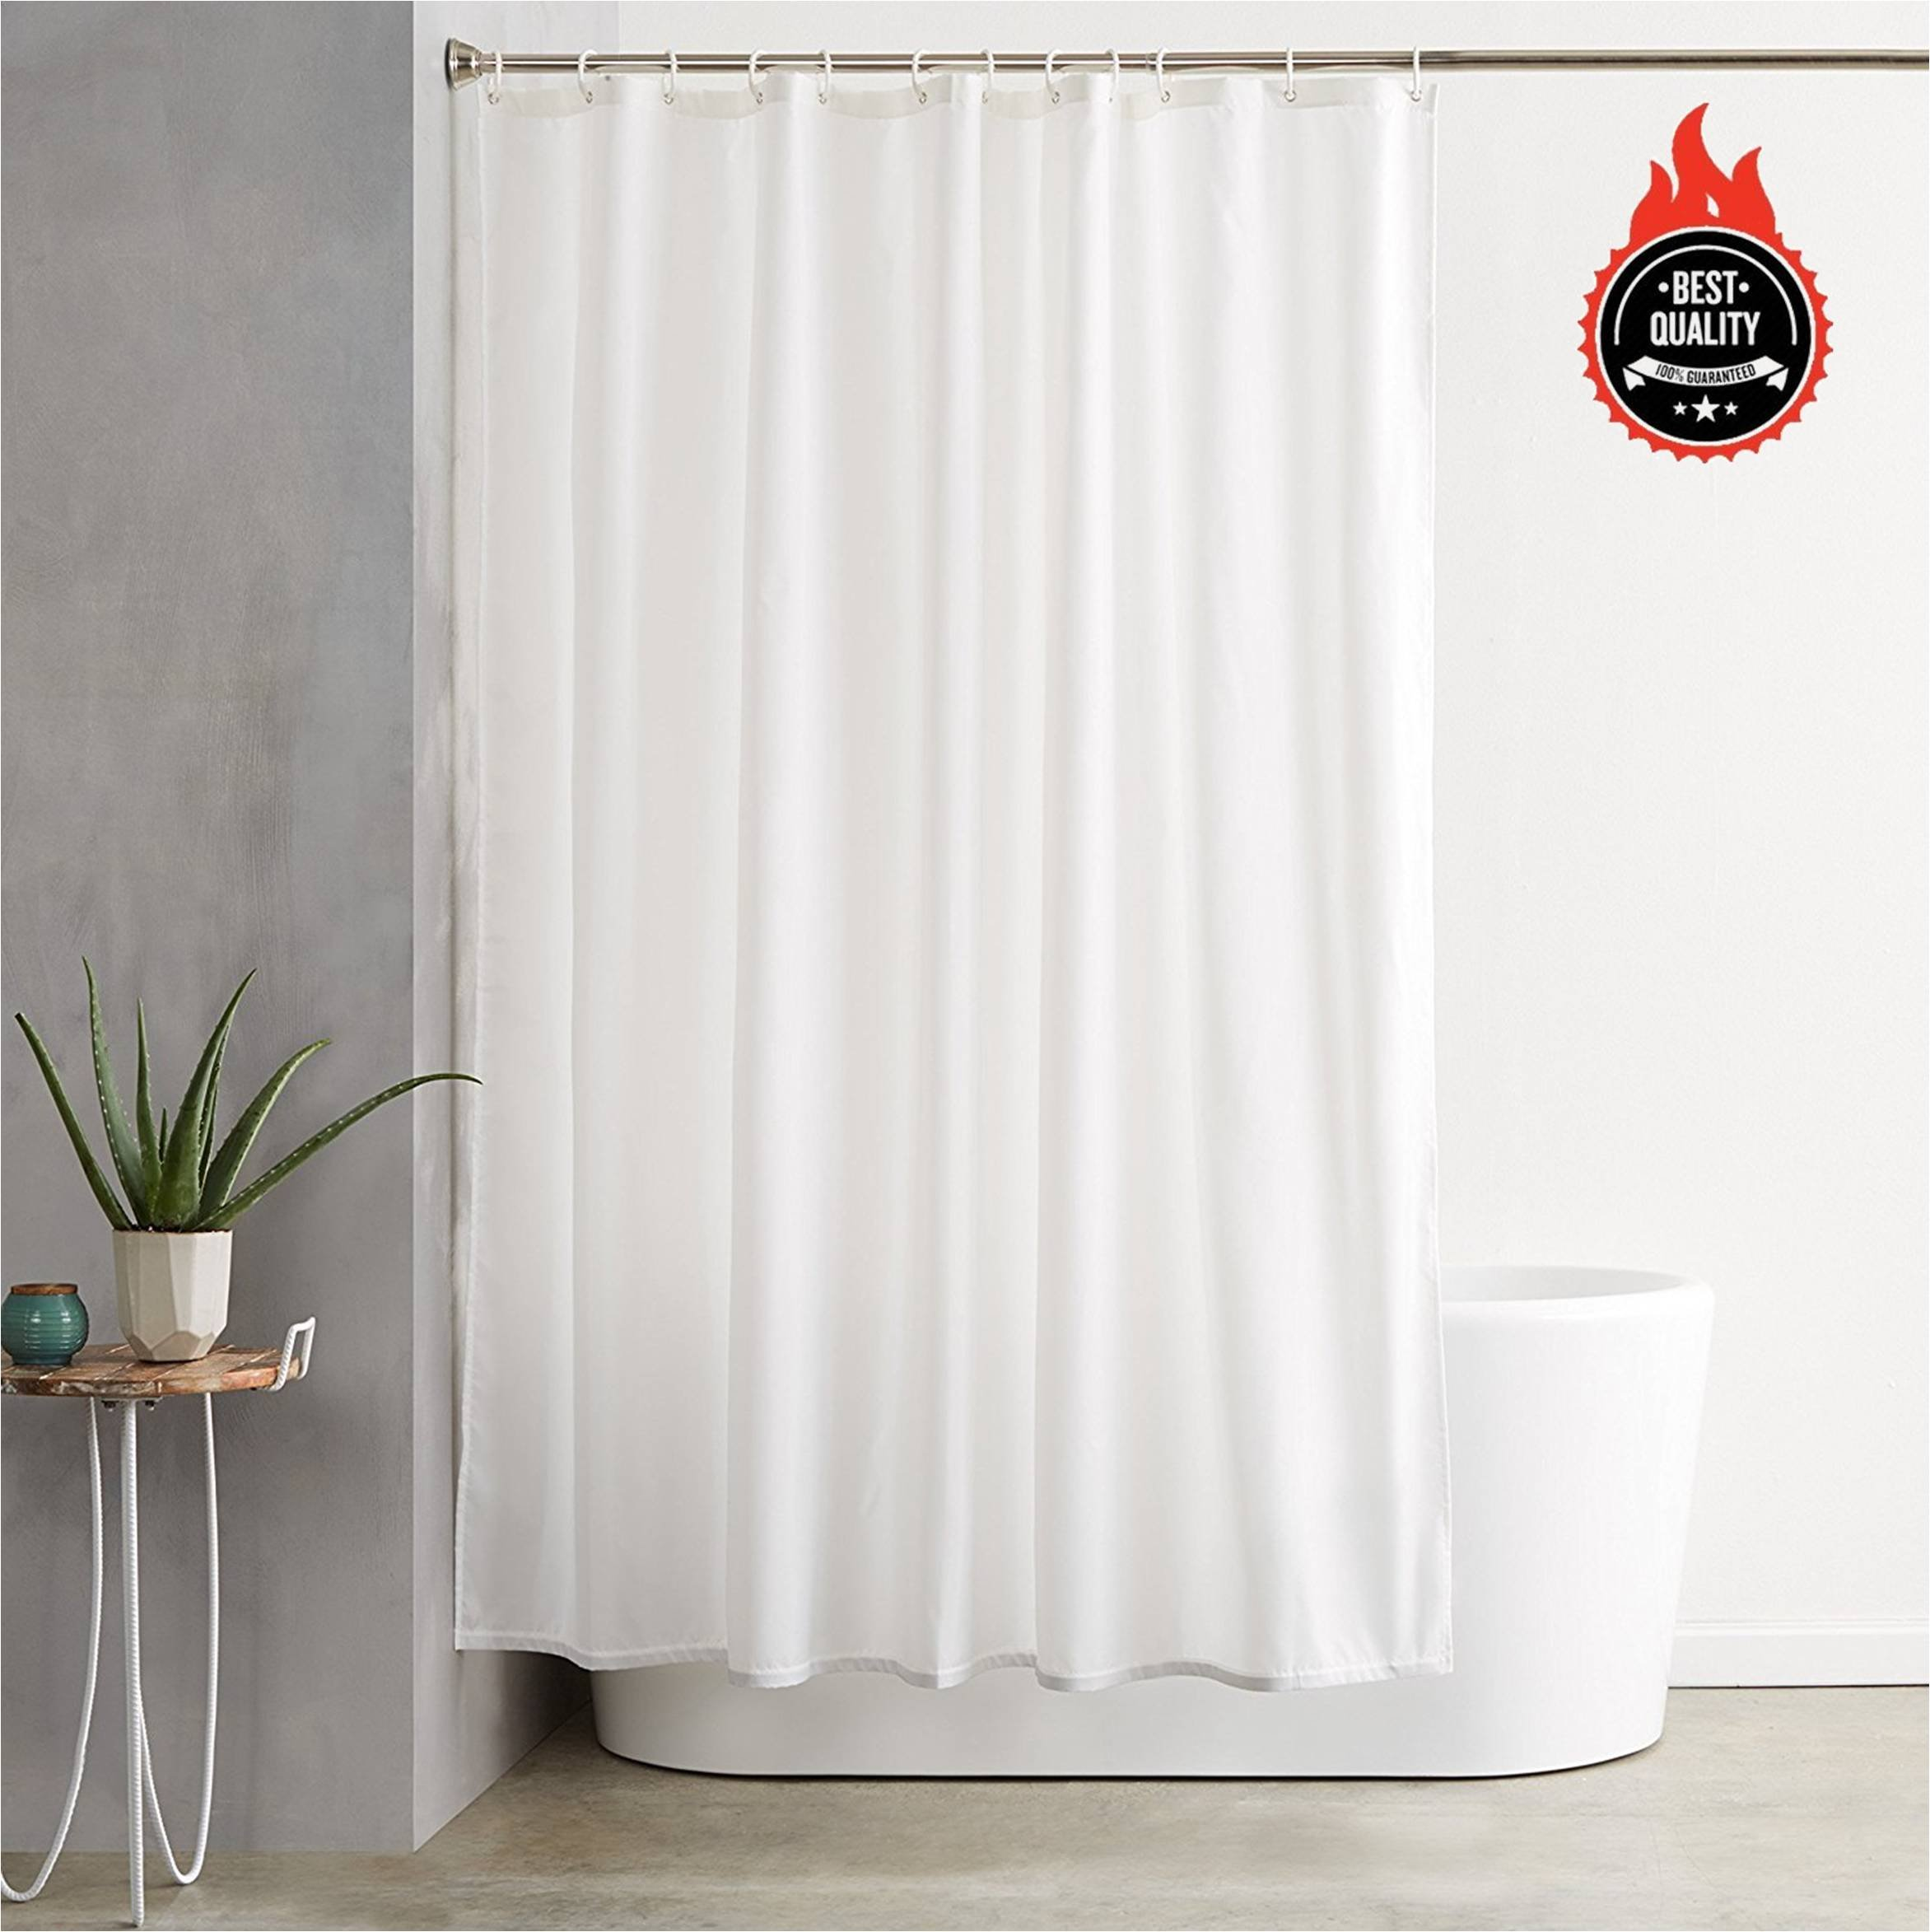 Awekris Fabric Shower Curtain Liner Solid, Hotel Quality White Polyester Curtain, Waterproof Imported Shower Curtain, Mold Mildew Resistant, Washable, Odorless, Spa, 60 x 71 inches for Bathroom